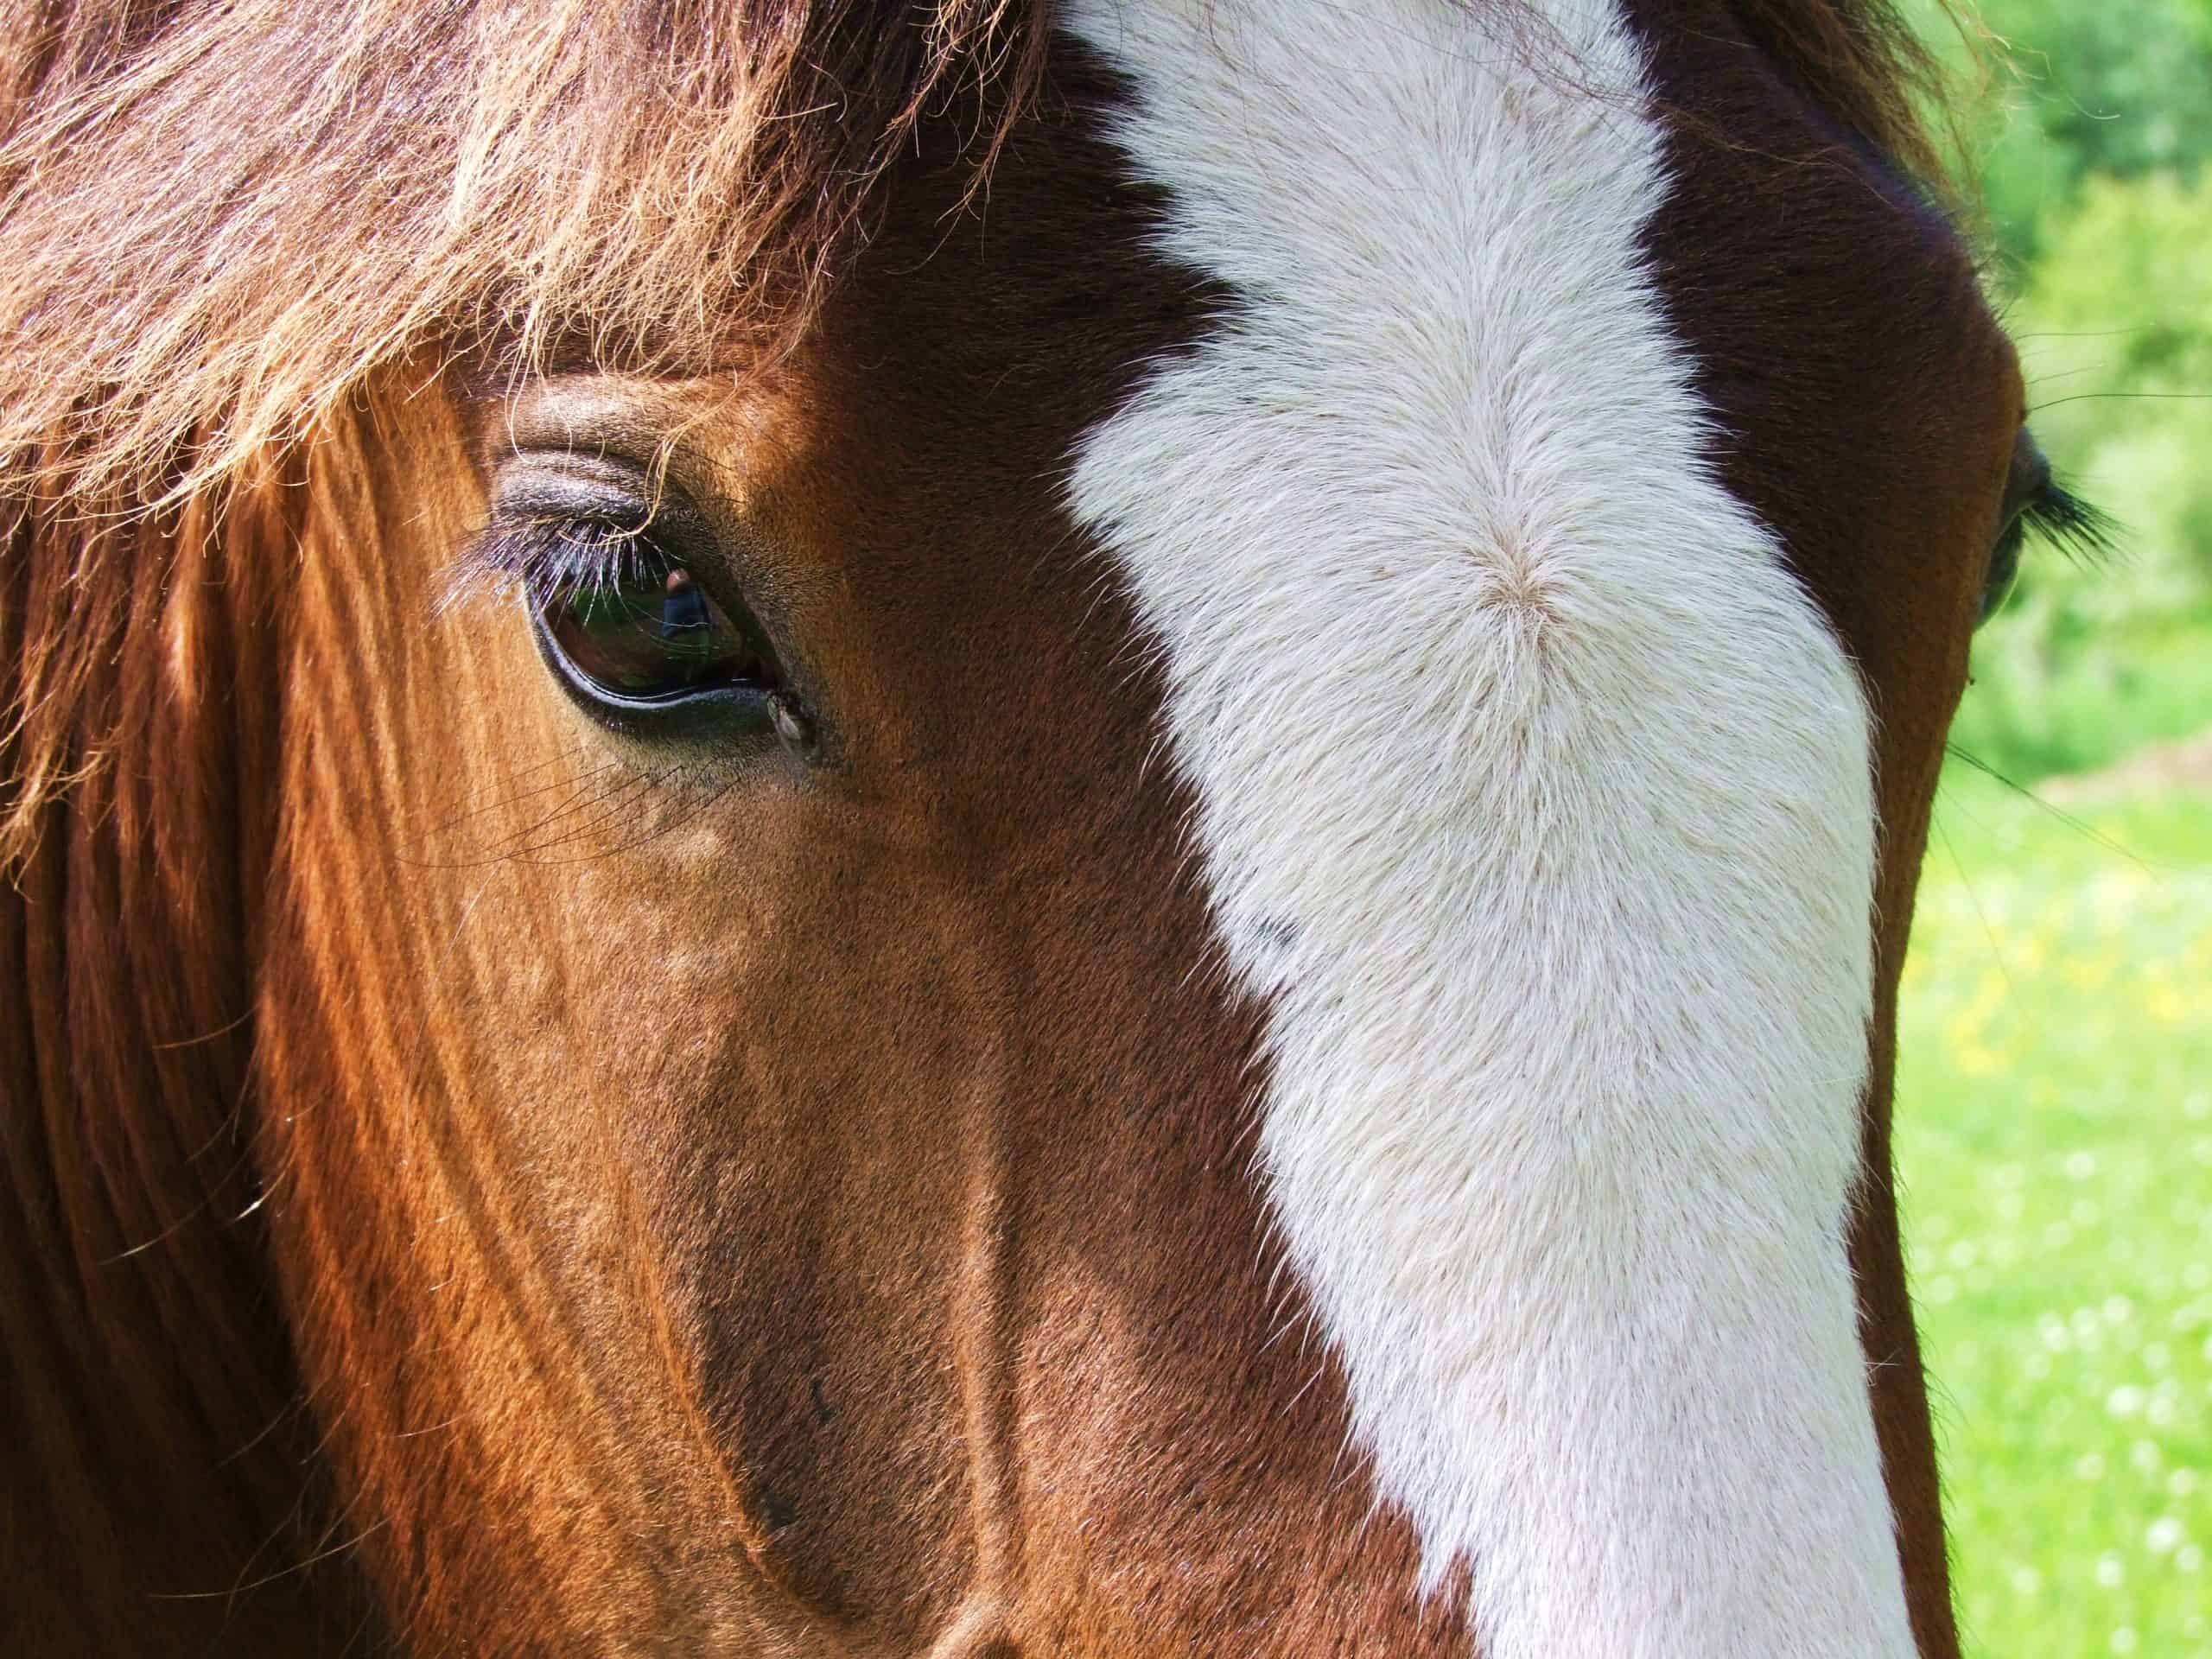 Close up head shot of a Clydesdale Horse